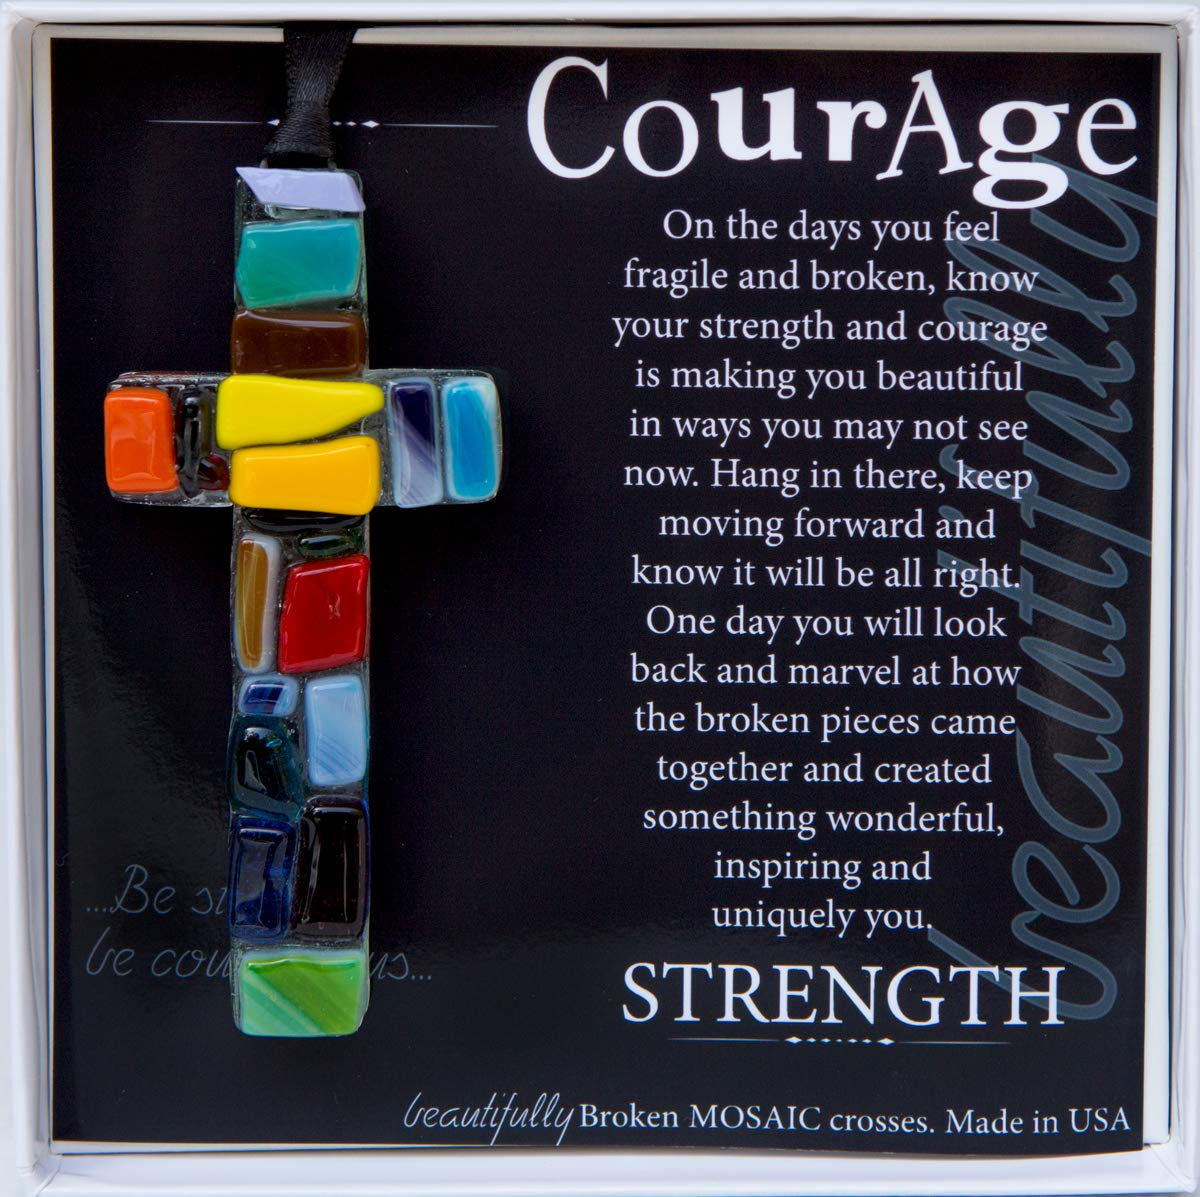 Handmade Glass Mosaic with Courage Poem - Inspirational Get Well Soon Gift for Cancer Patients/Encouragement Gift for Hard Times